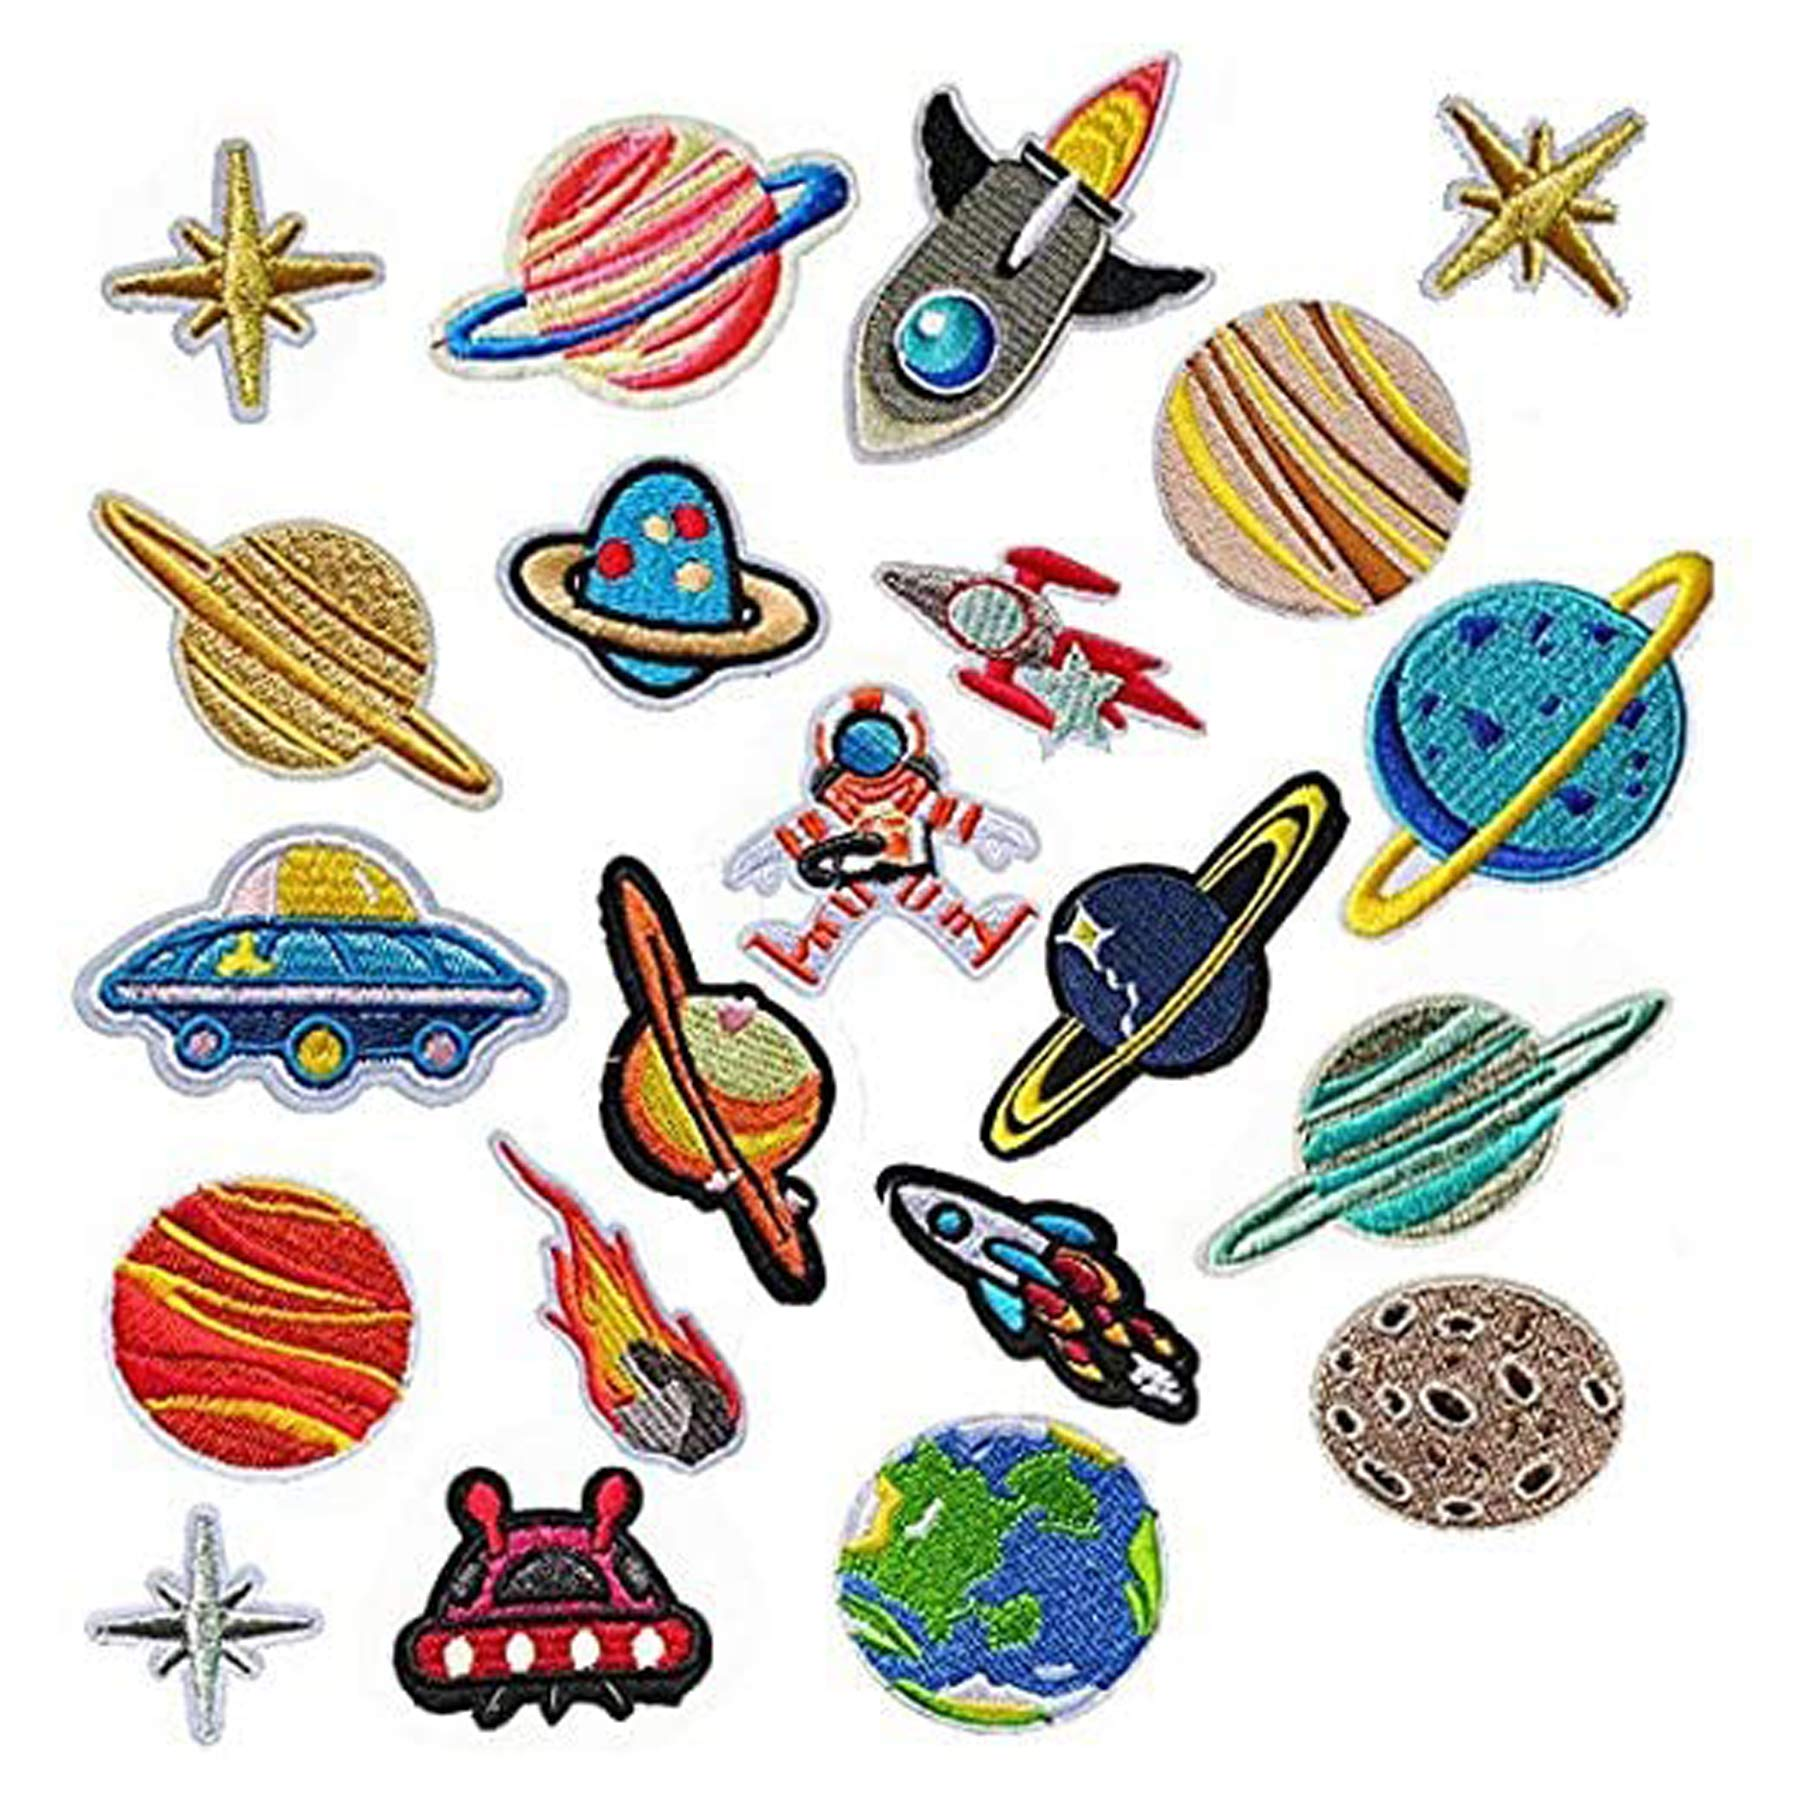 Iron on Patches 21 PCS Solar System Astronaut Space Planets Patch Iron on Patches Woohome Appliques Stickers for Clothing, Backpack, Caps, Repair The Hole Stick